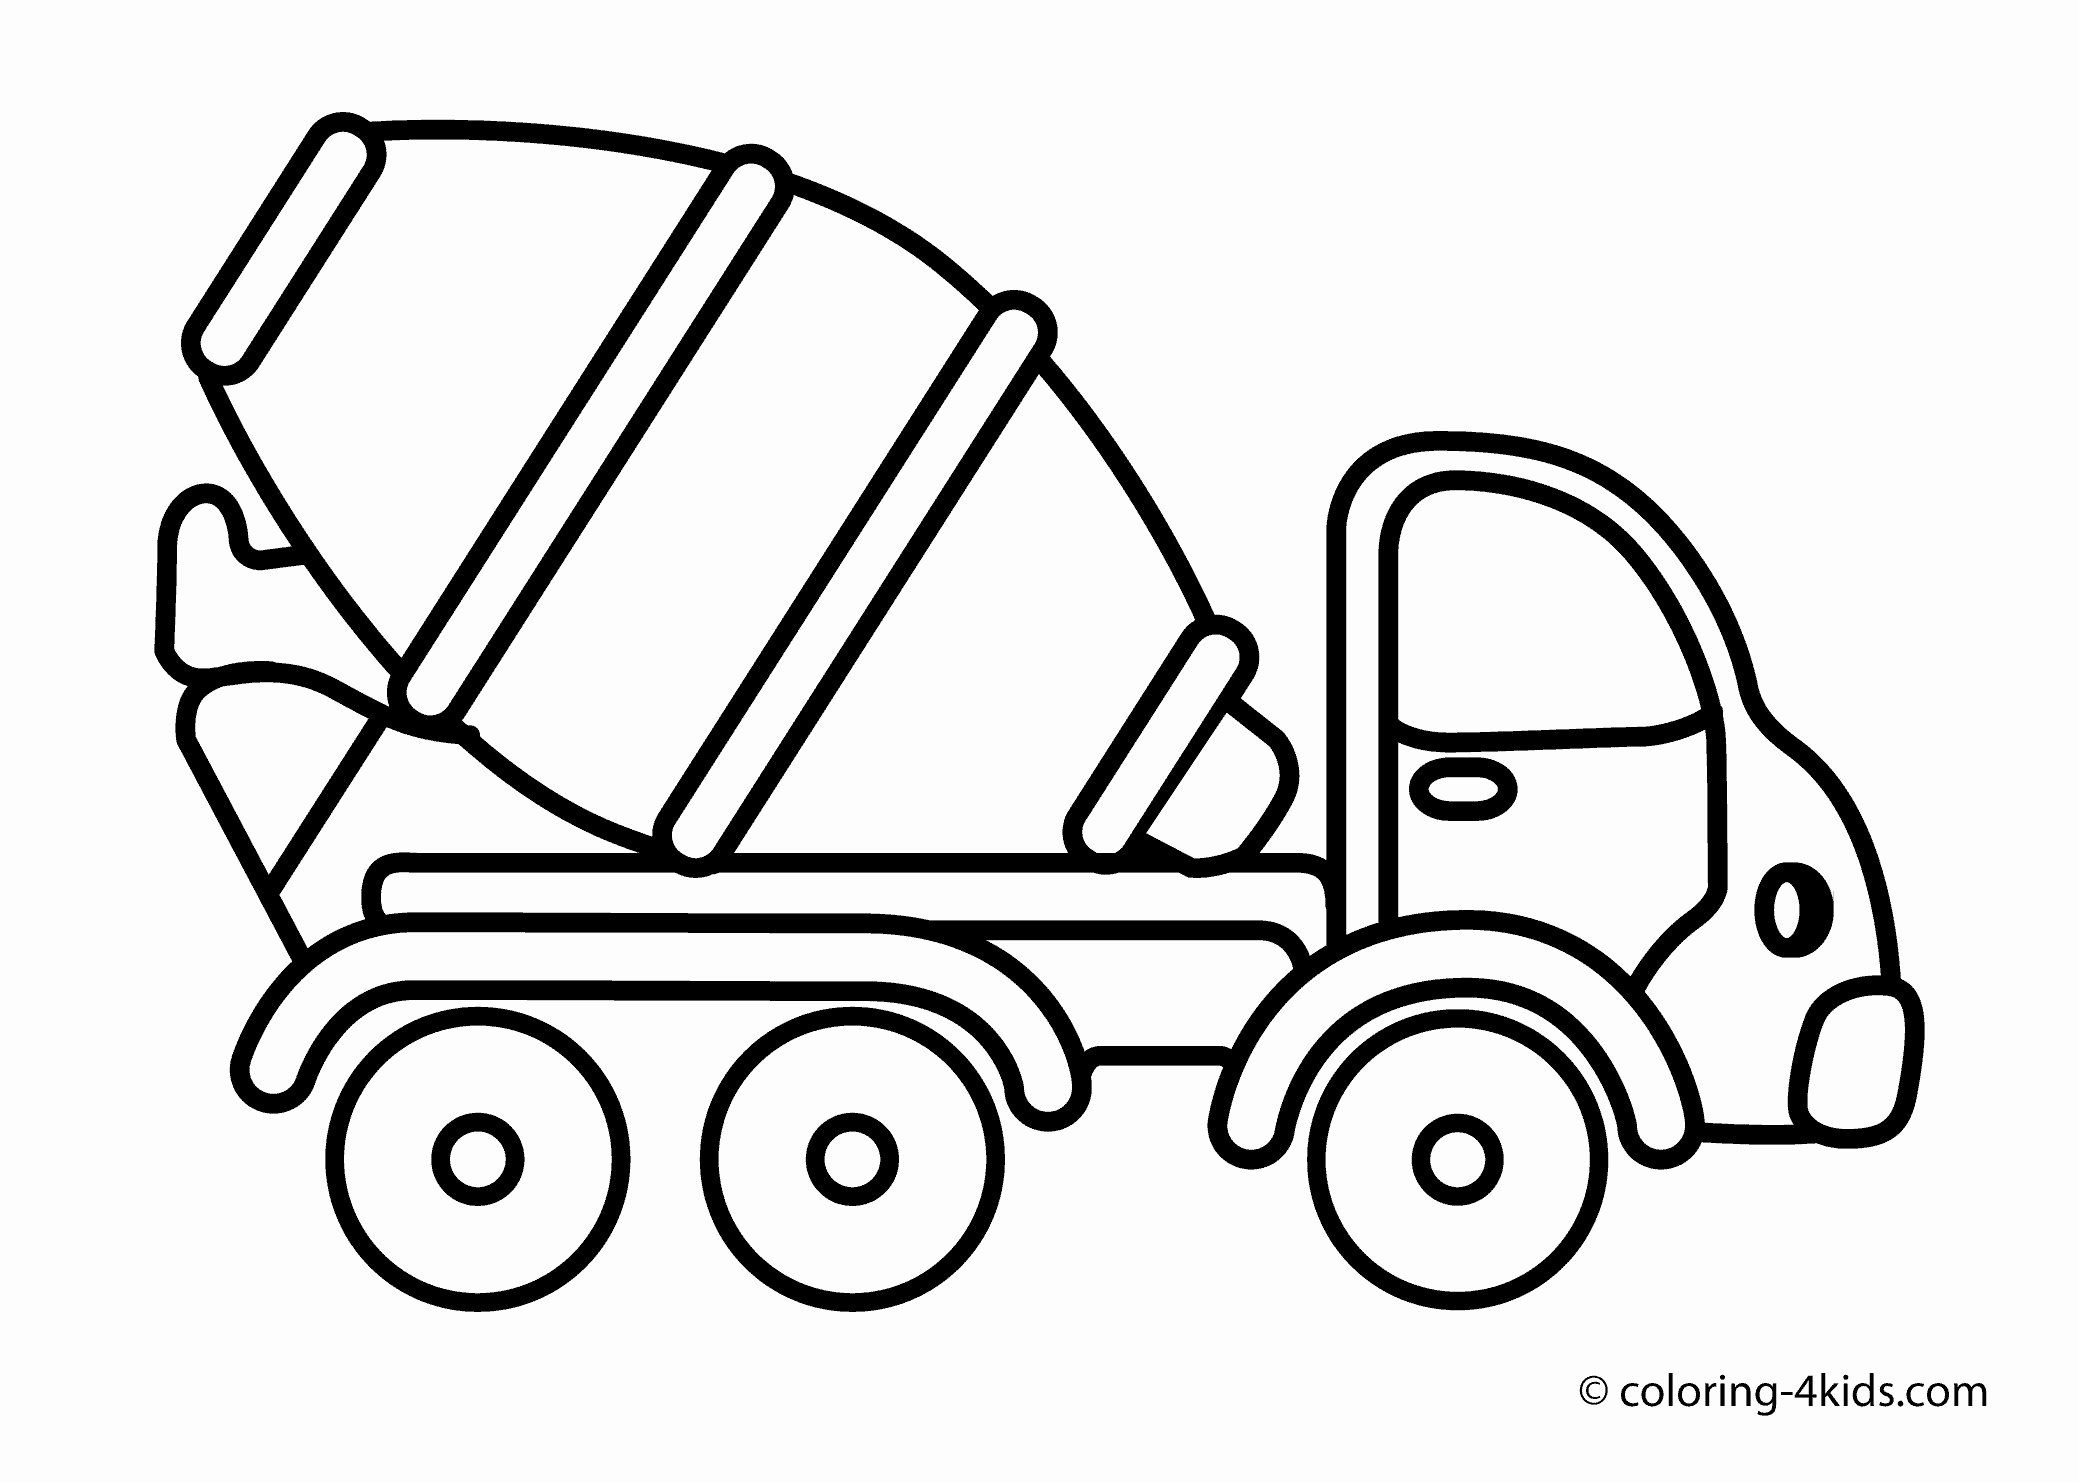 Coloring Pages Cars Trucks Best Of Best Concrete Mixer Truck